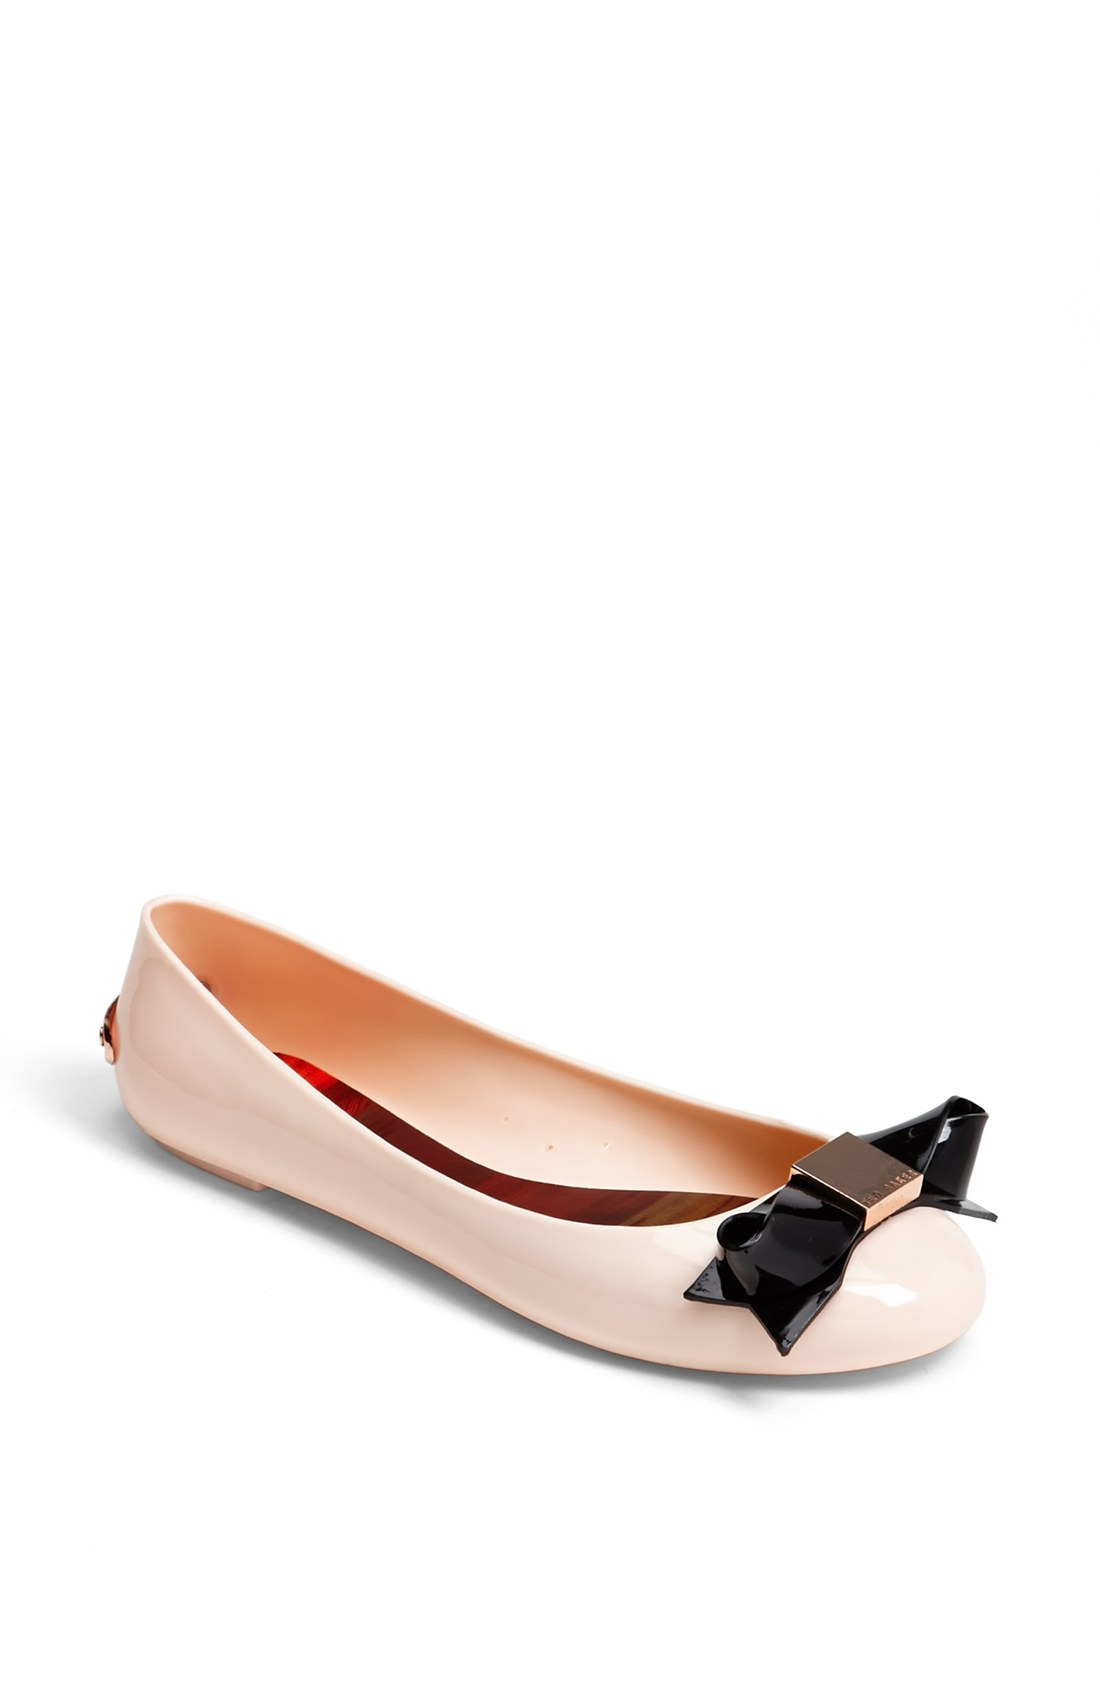 c77678024de4e Ted Baker Pink Flat Related Keywords   Suggestions - Ted Baker Pink ...